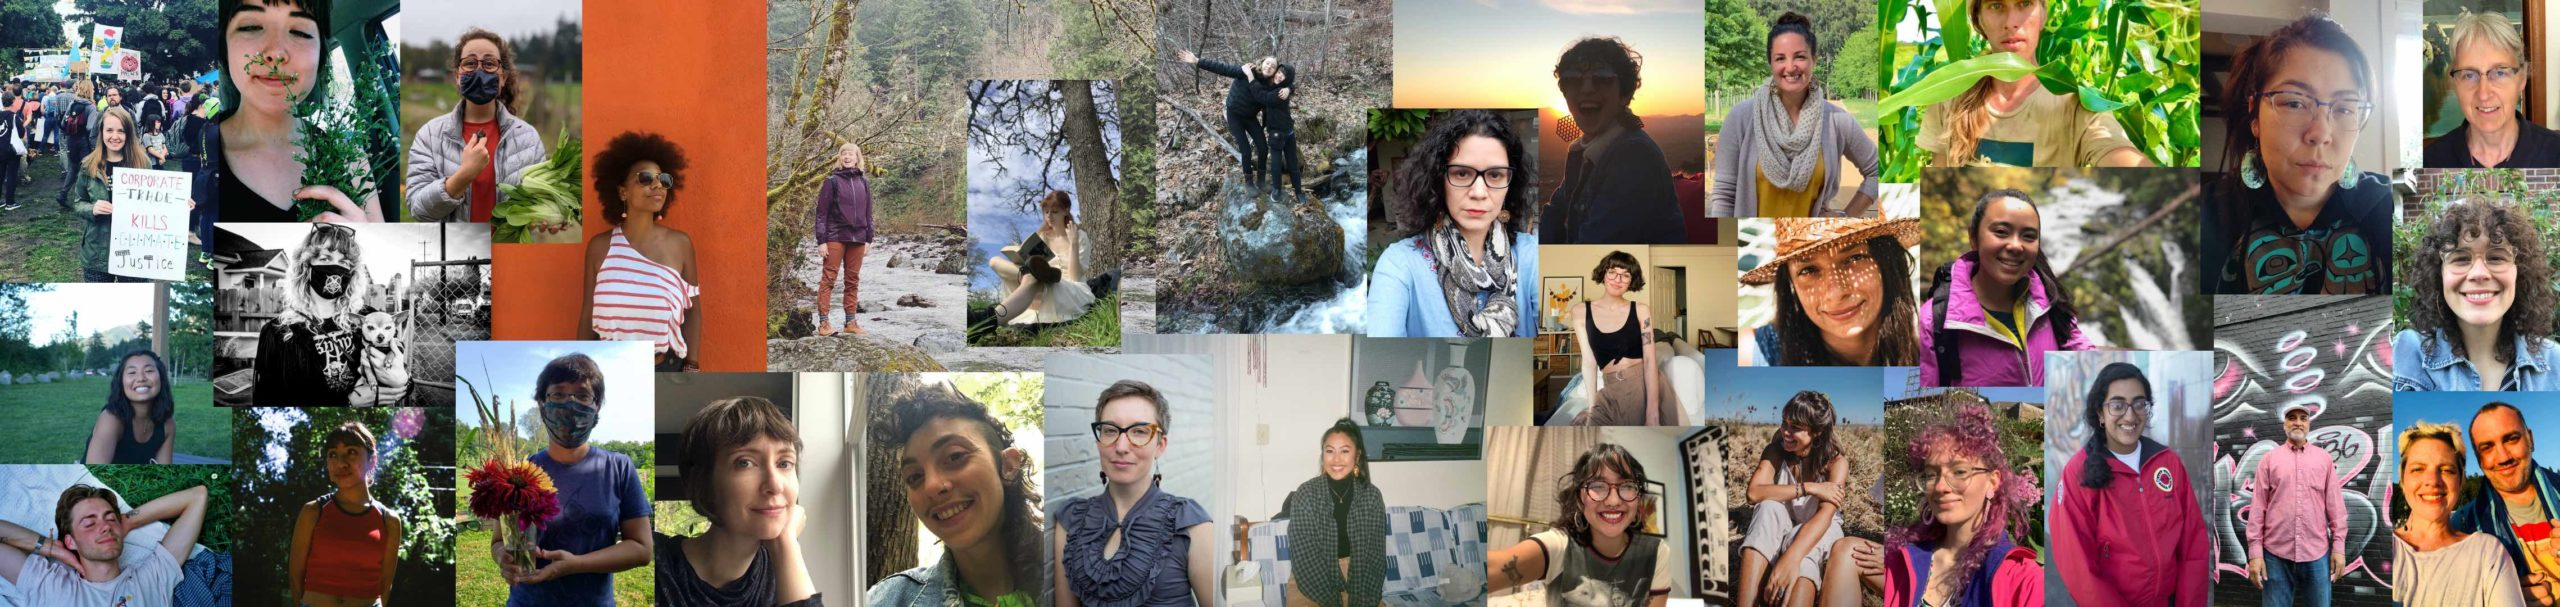 Collage of artists